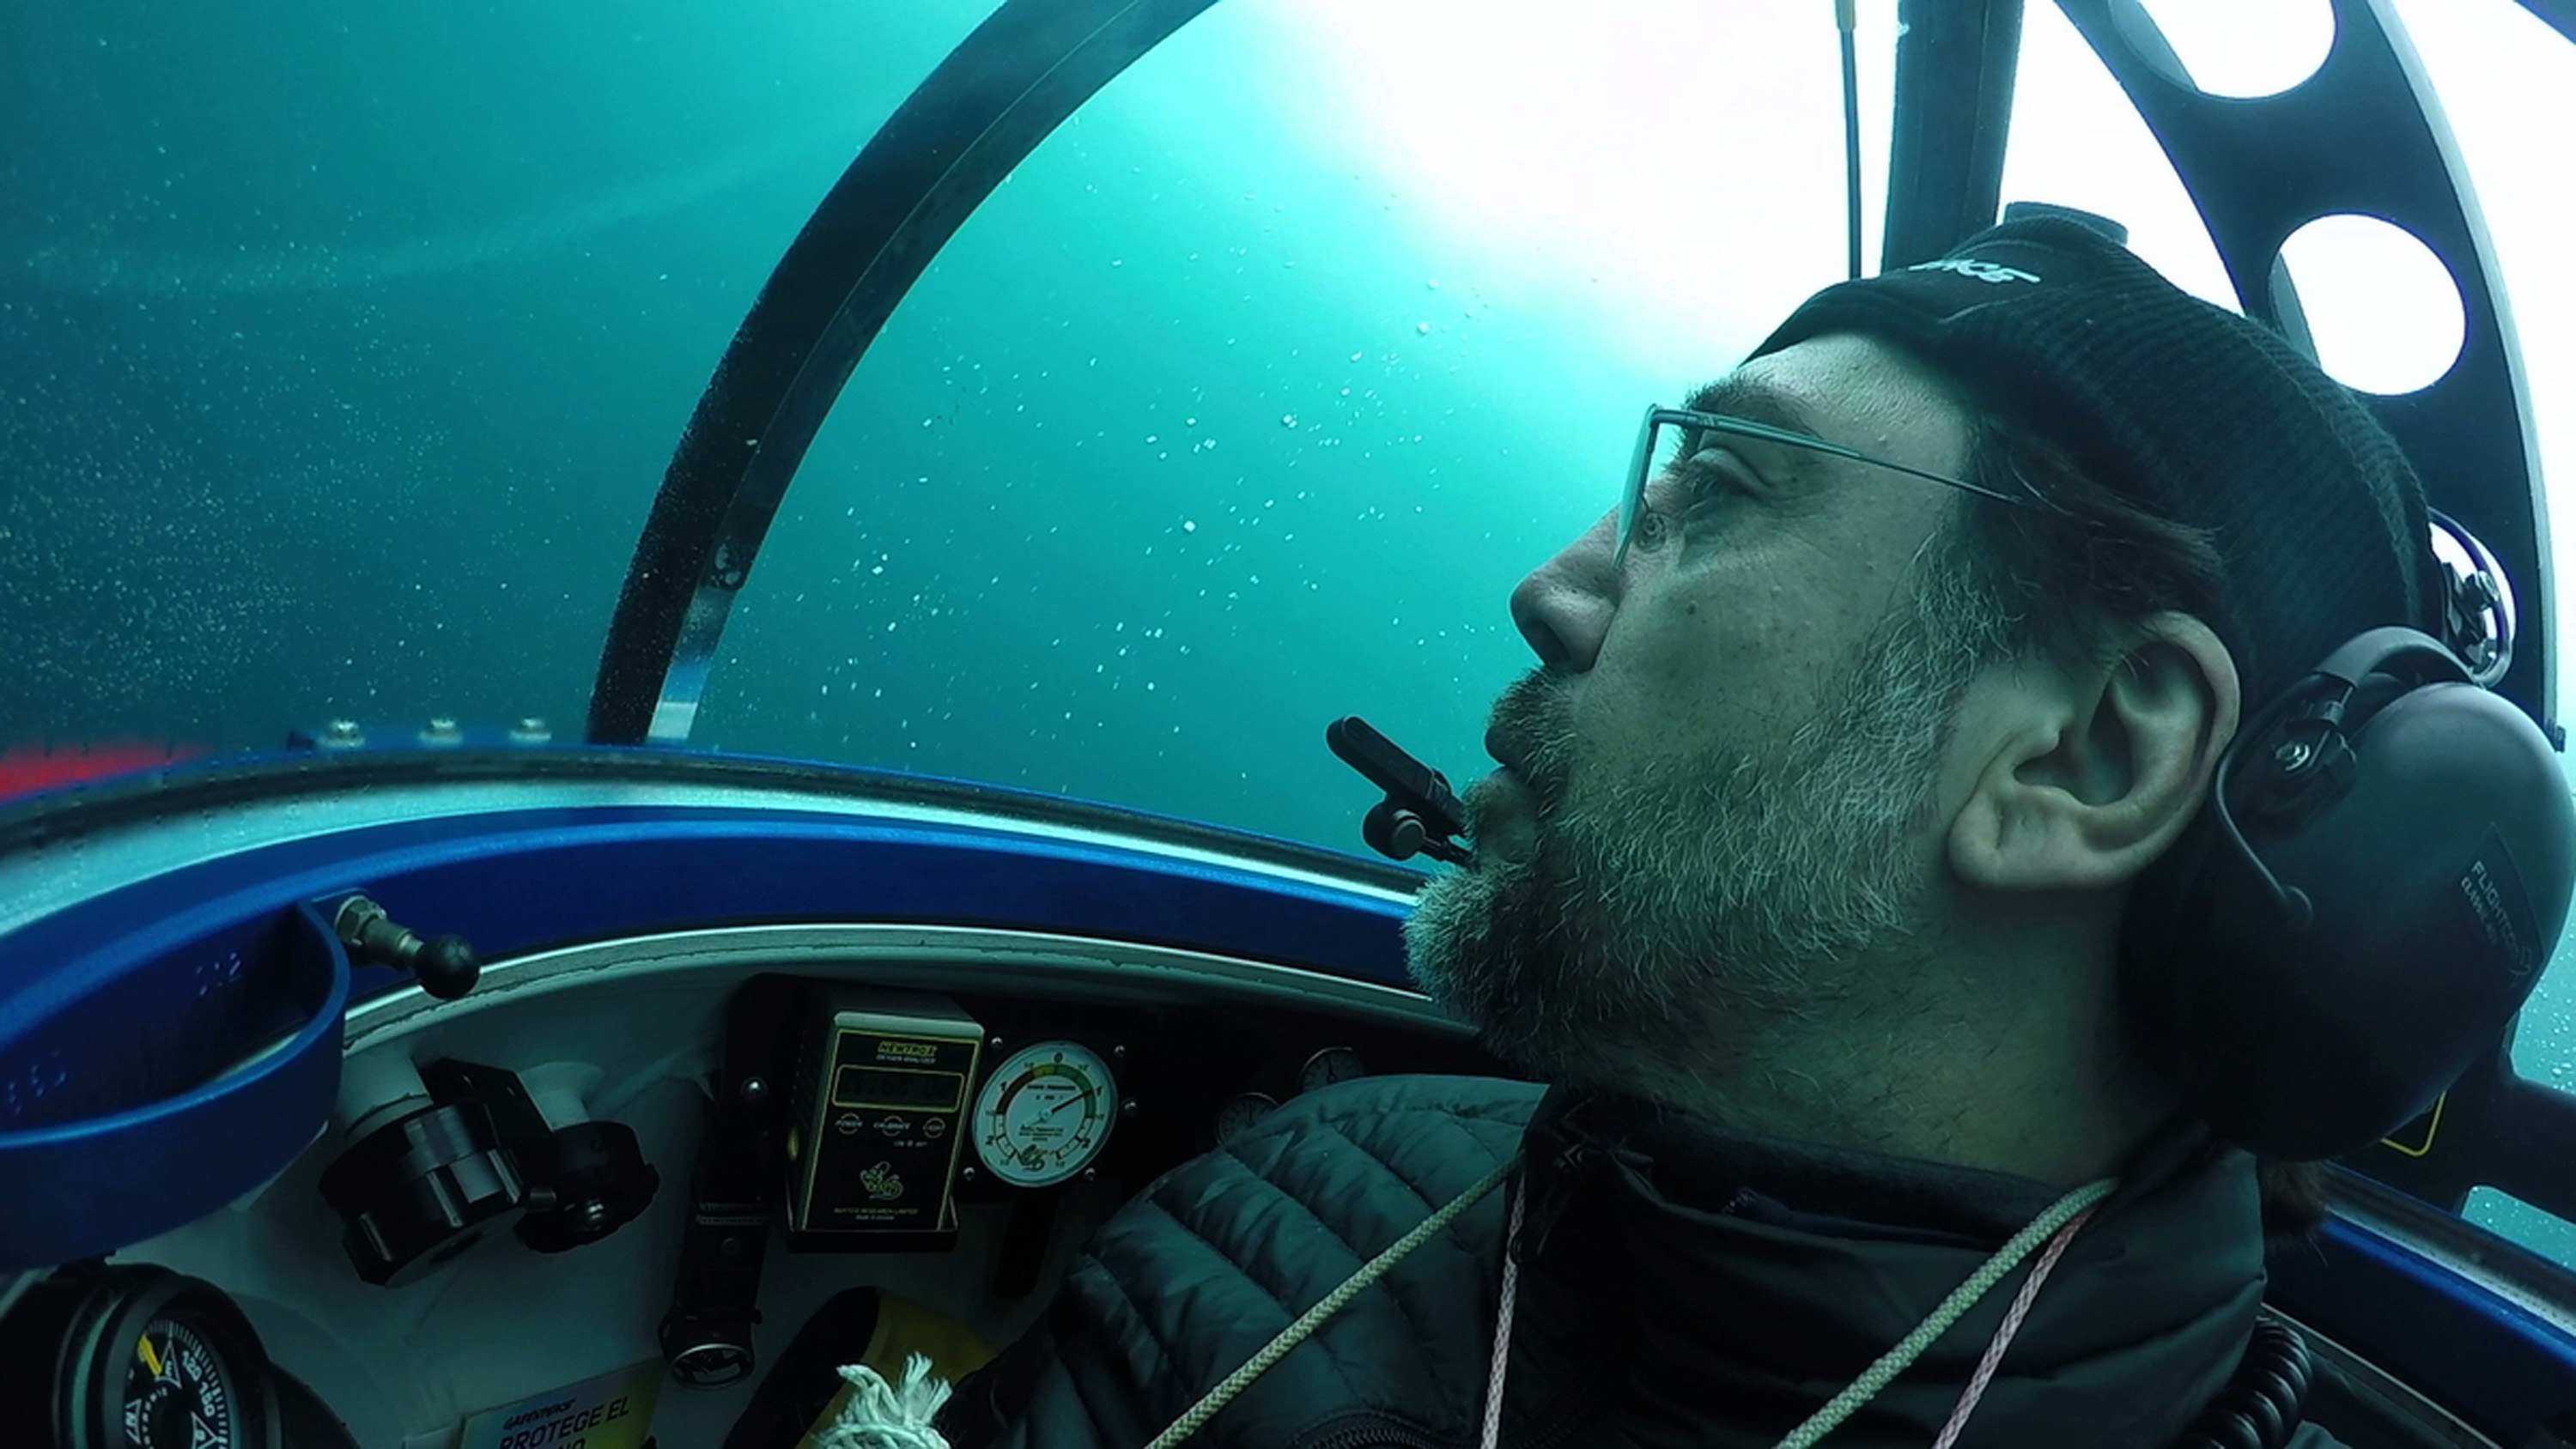 Photo made available by the Greenpeace organization on Jan. 30, 2018 shows Spanish actor Javier Bardem (L), in a two-man submarine, in the Antarctic Ocean, near the Antarctic Peninsula, Chile, Jan. 24, 2018.